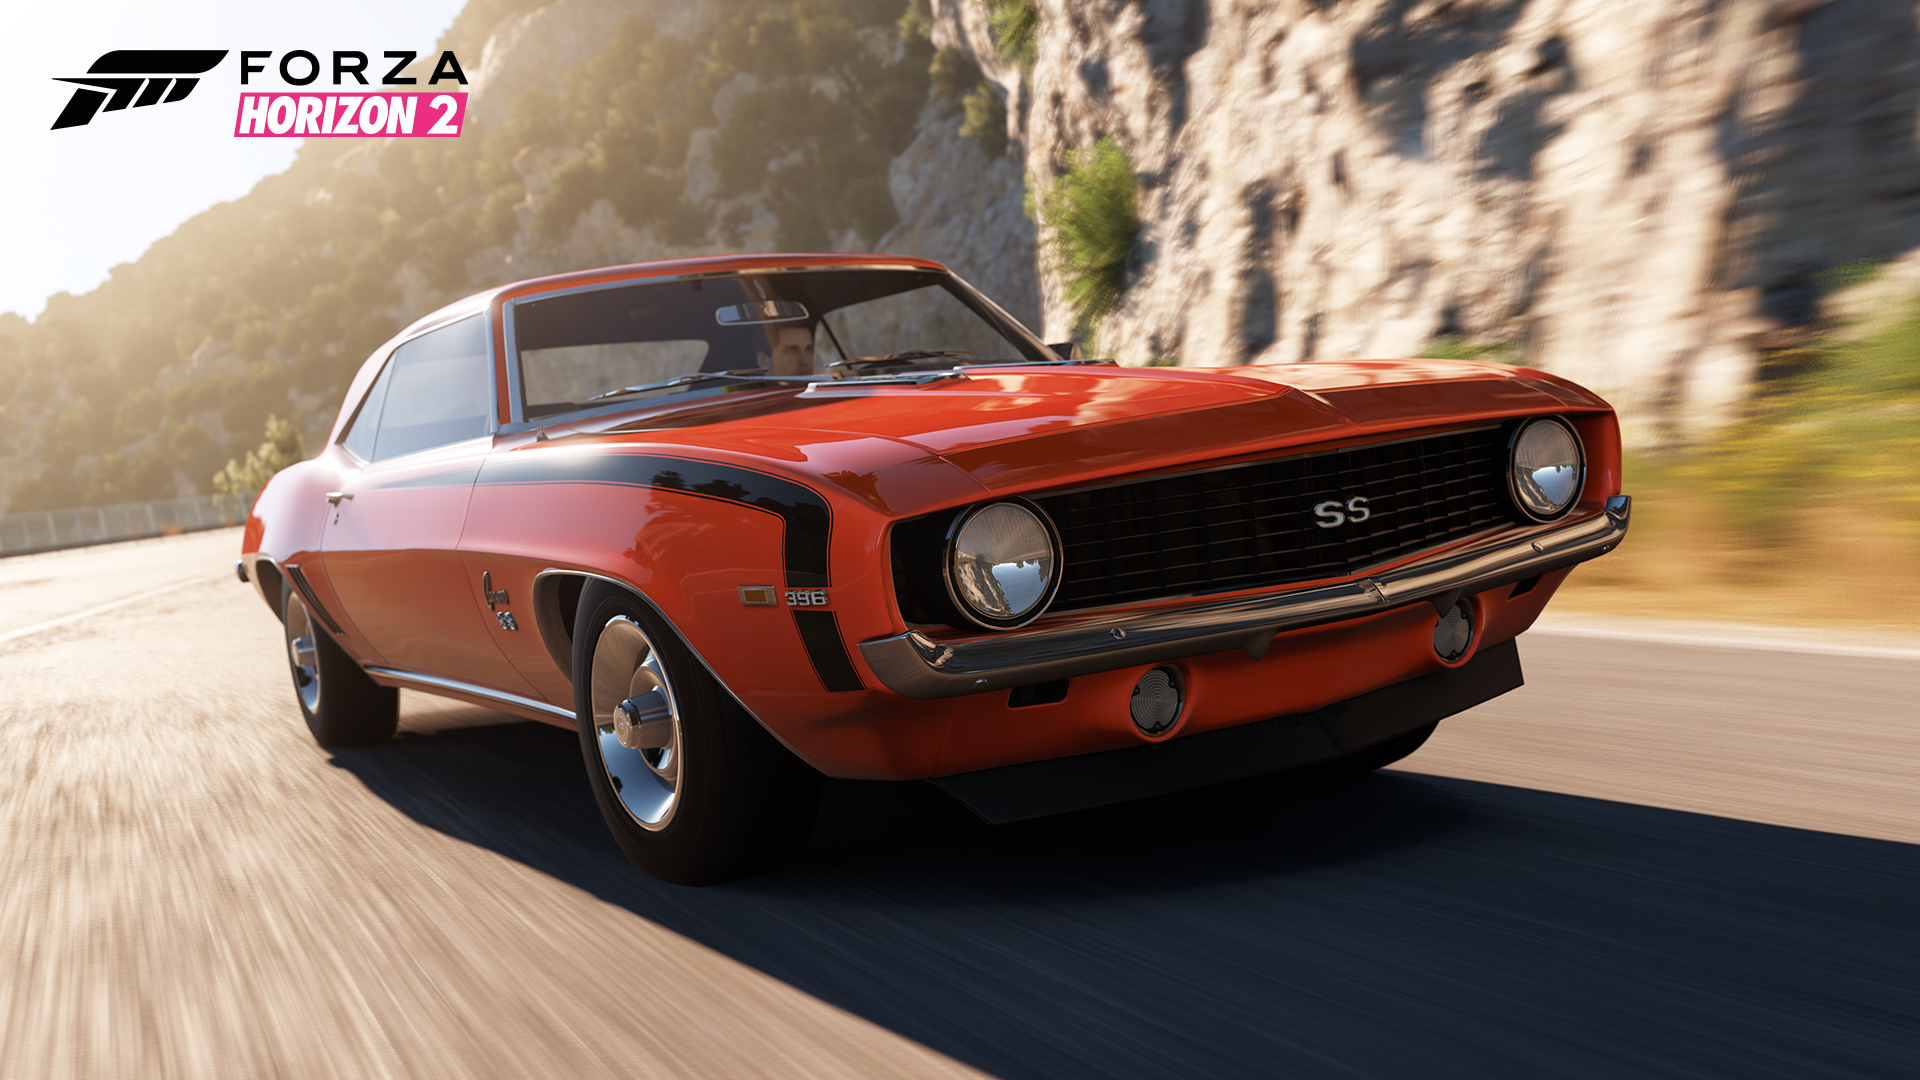 Here\'s another list of hot cars in Forza Horizon 2 - VG247